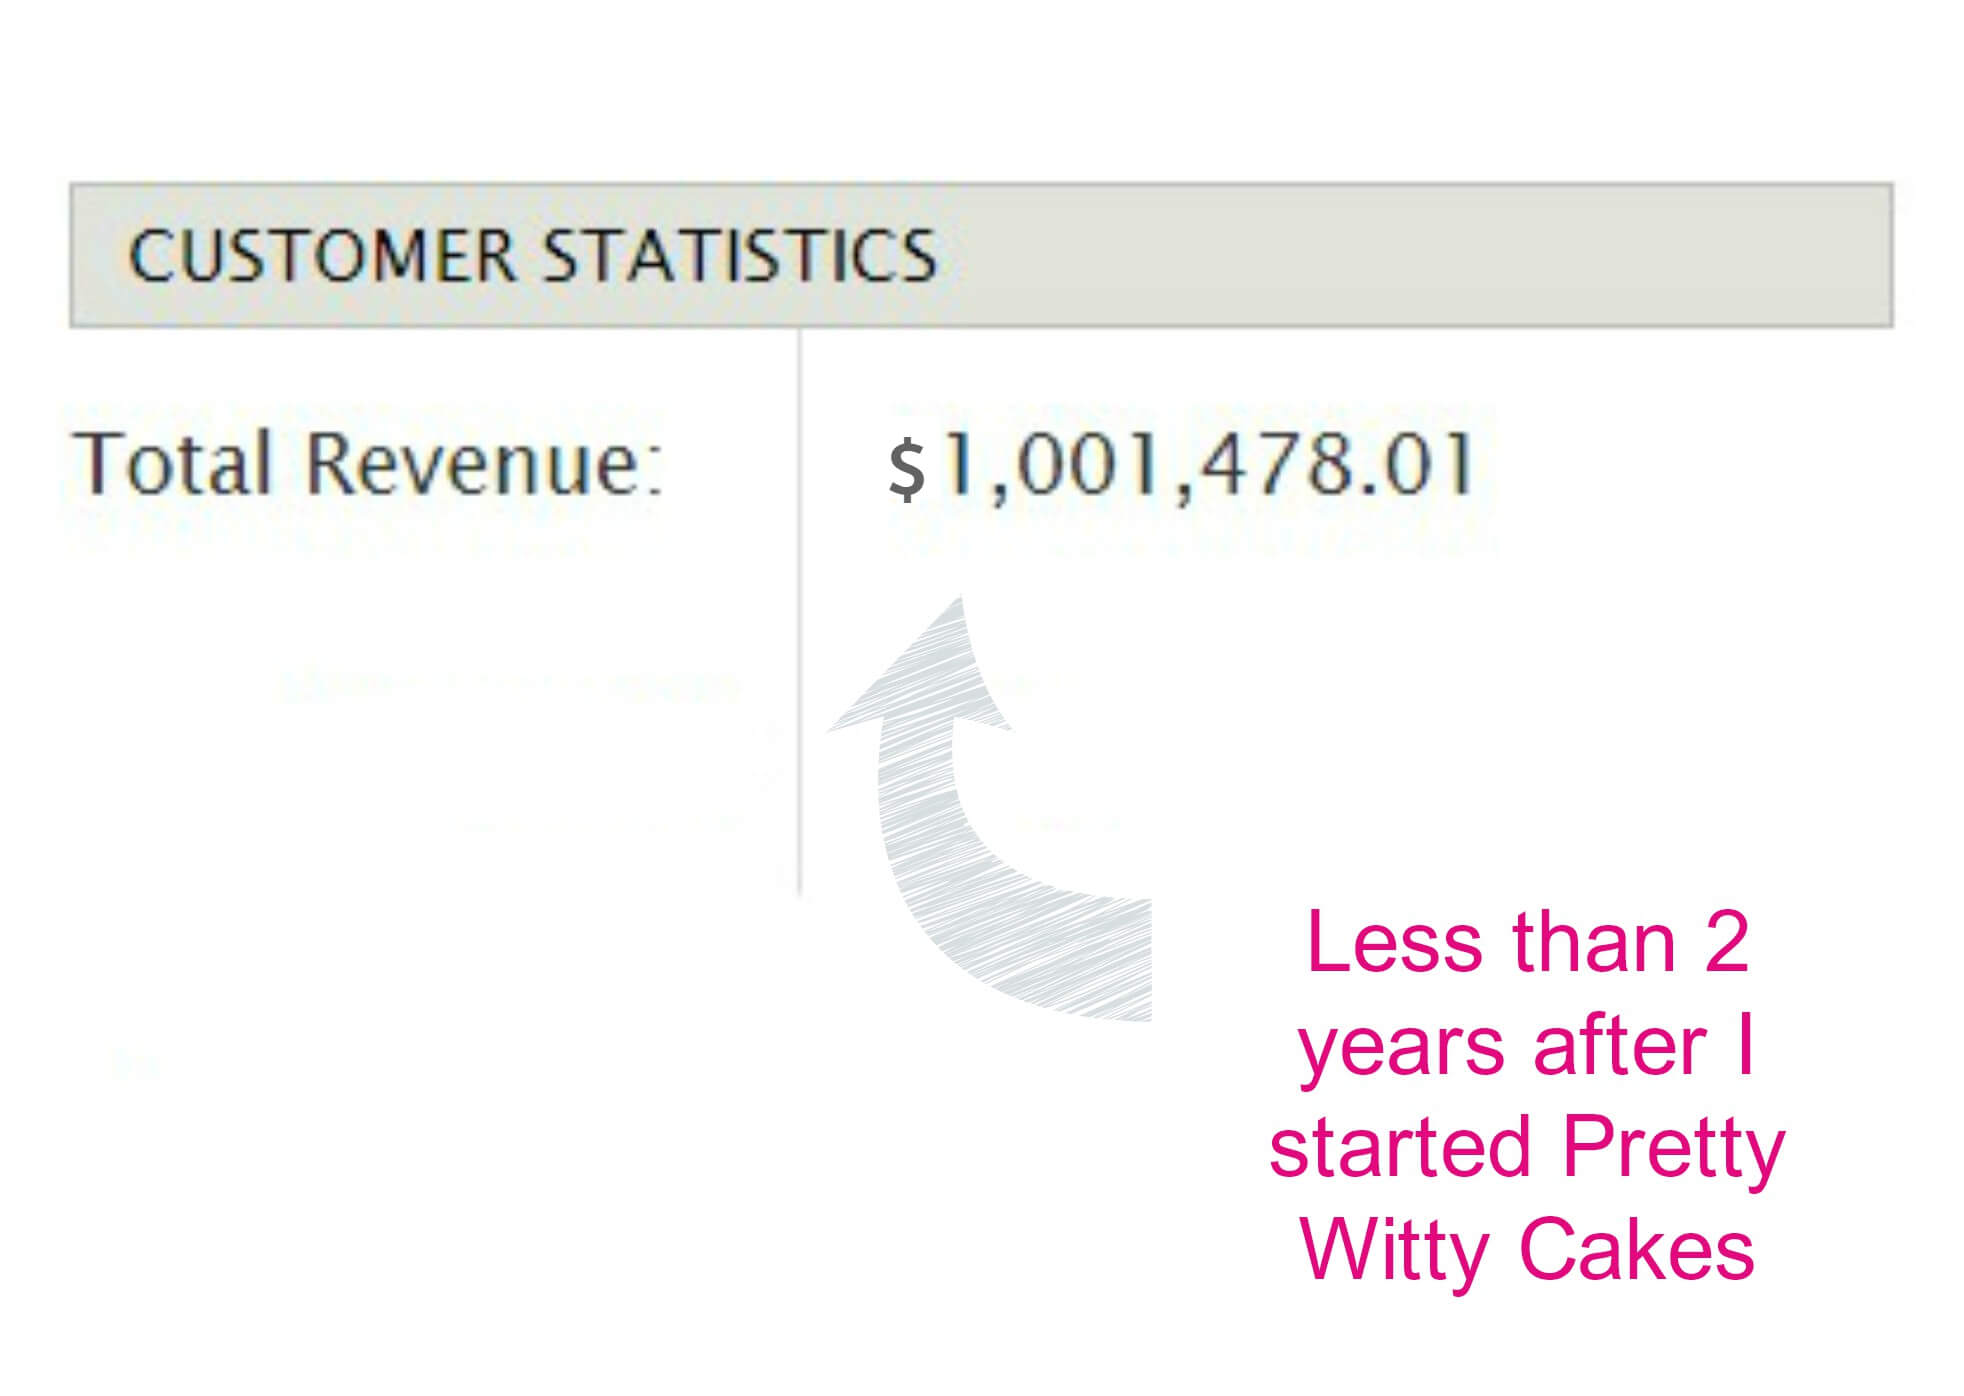 Pretty Witty CAkes revenue year 2